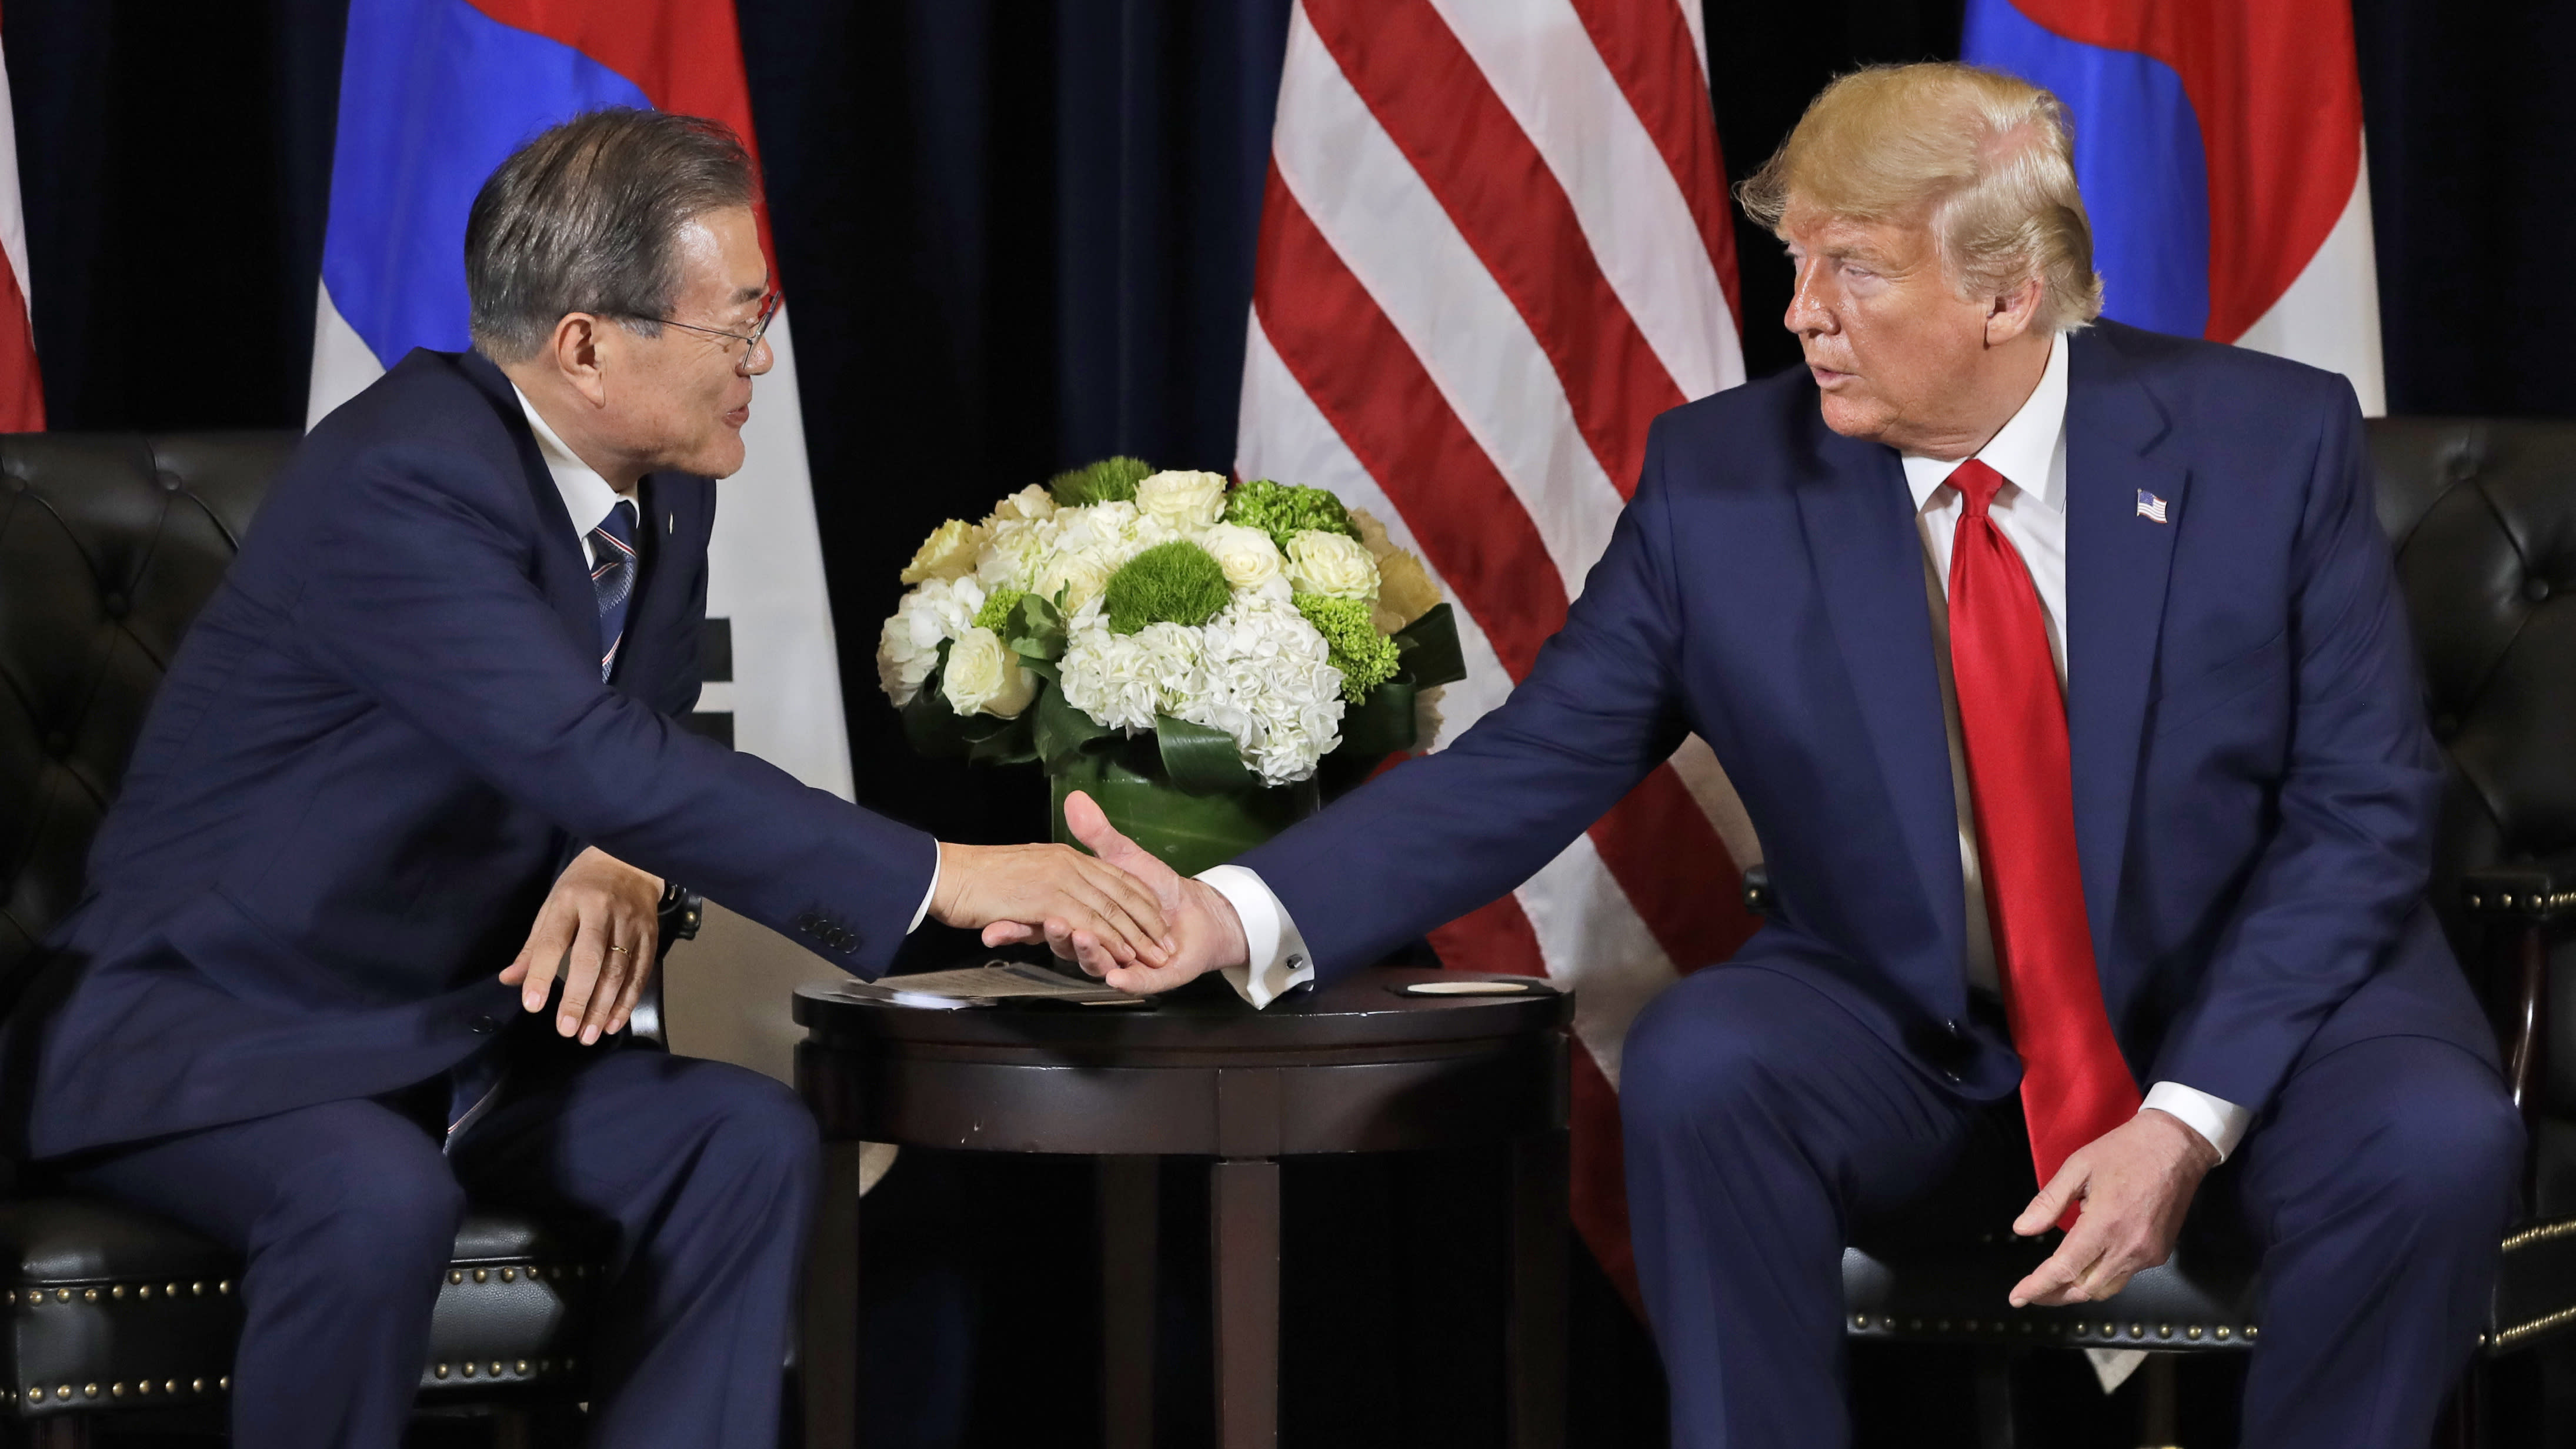 President Donald Trump meets with Korean President Moon Jae-in at the InterContinental Barclay hotel during the United Nations General Assembly, Monday, Sept. 23, 2019, in New York. (AP Photo/Evan Vucci)